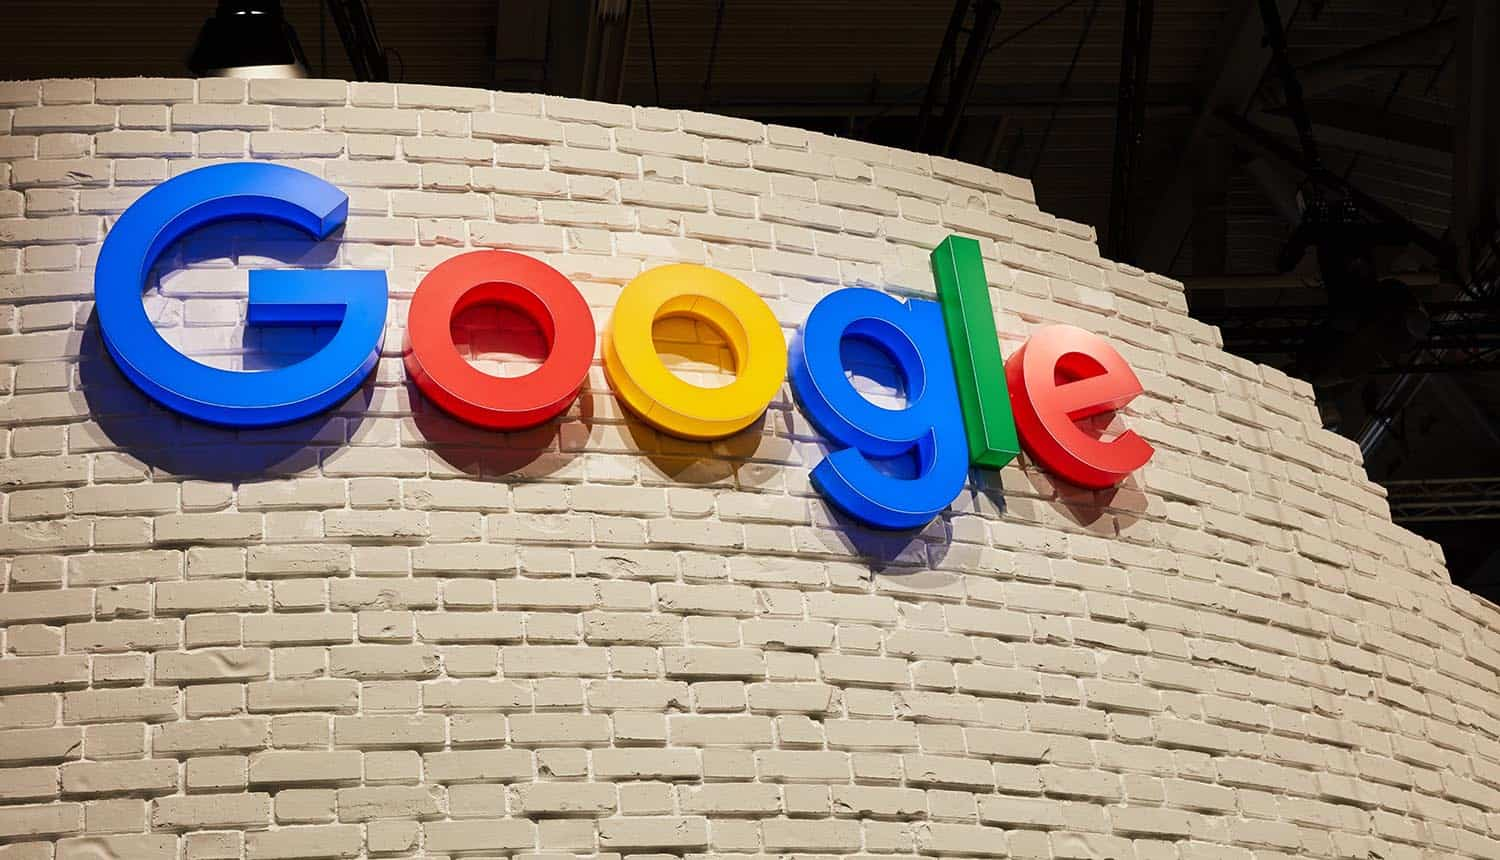 Google logo on a wall showing new timeline for privacy sandbox